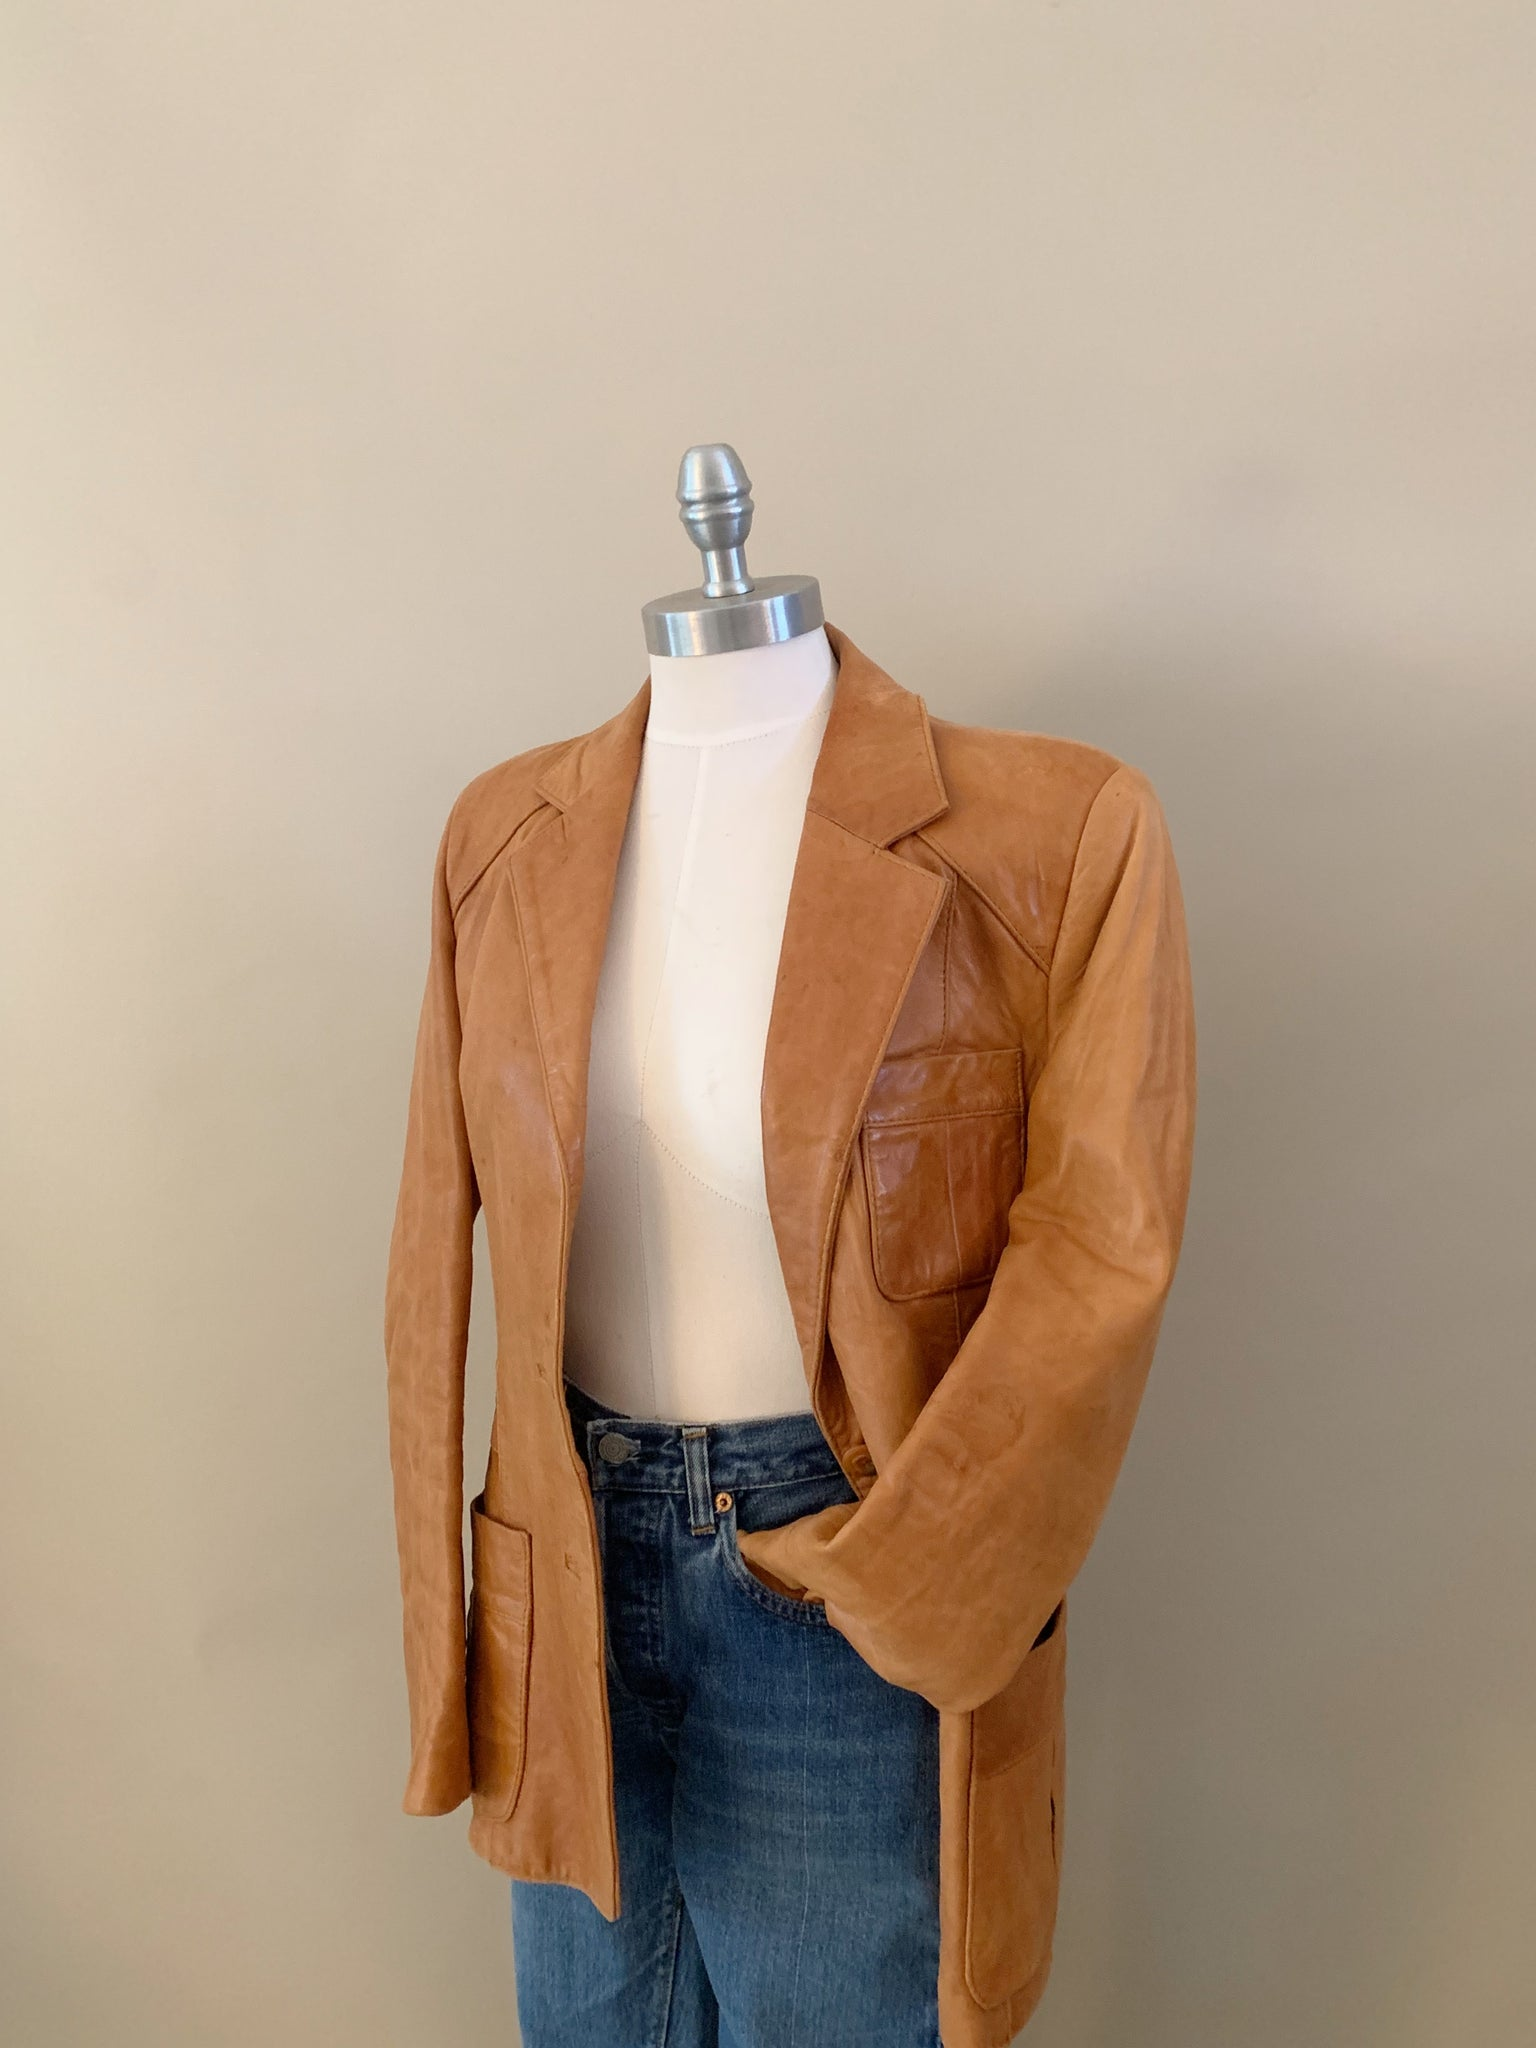 Wilsons leather blazer